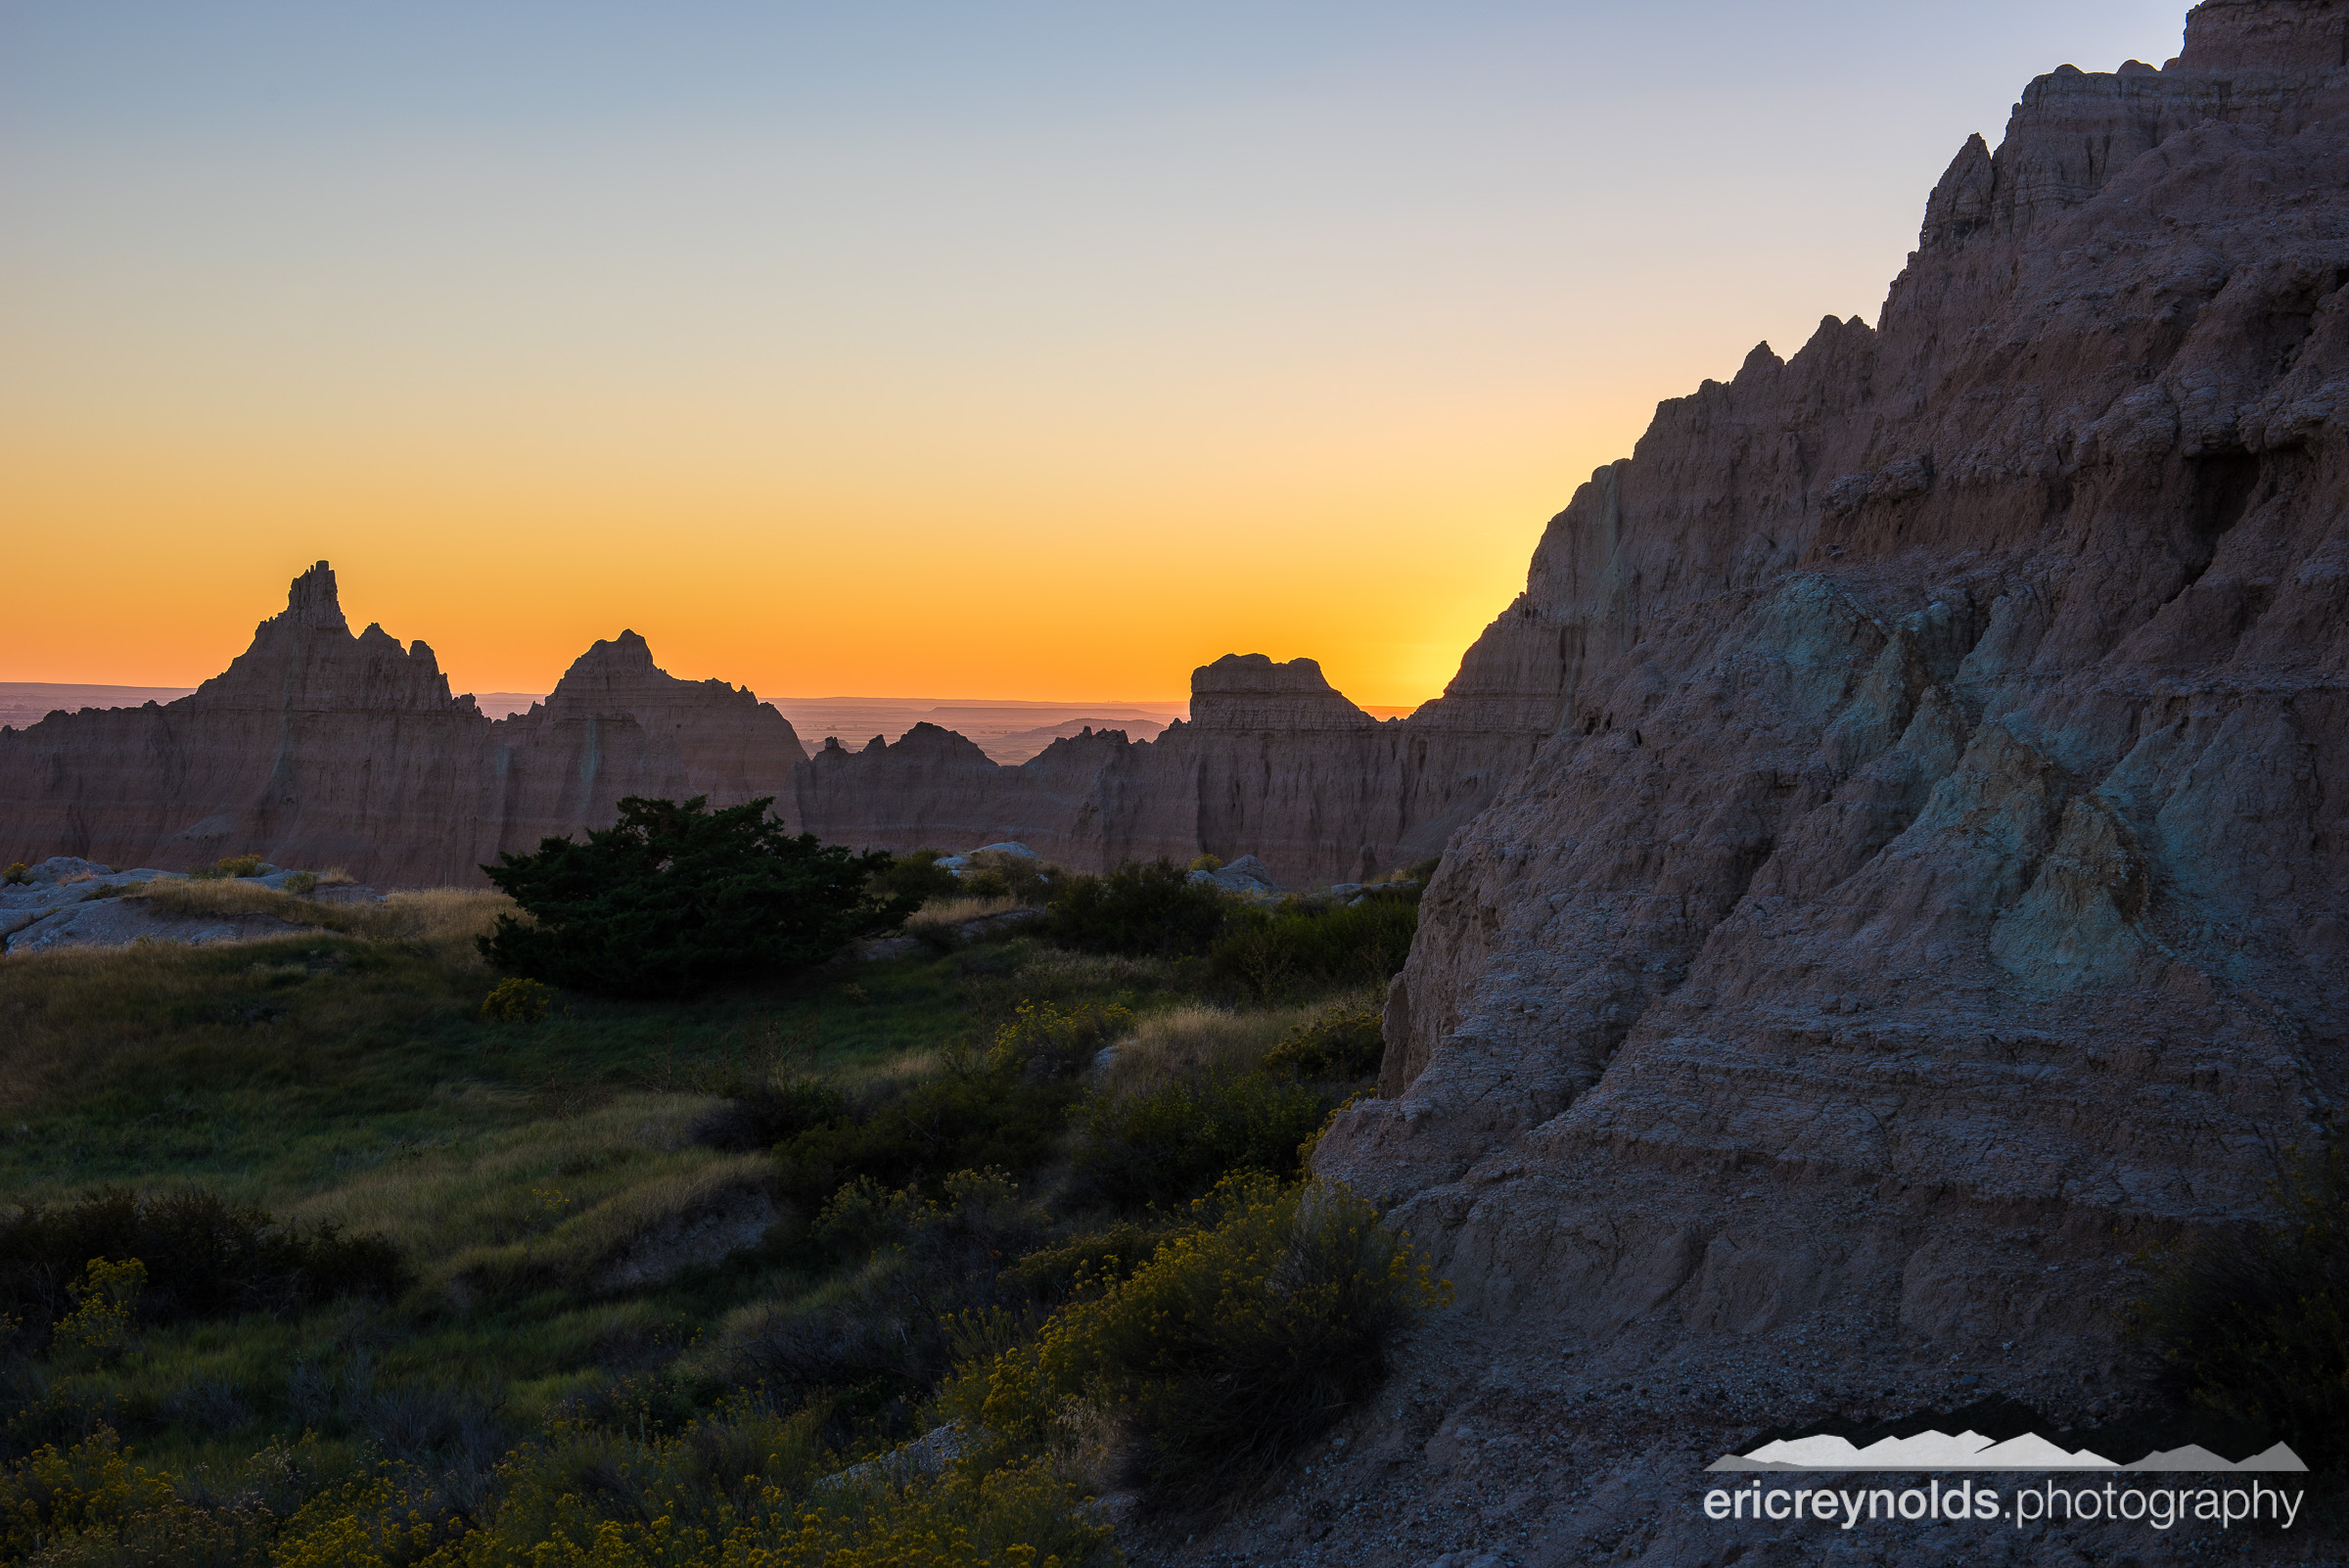 Sunset over Cedar Pass by Eric Reynolds - Landscape Photographer